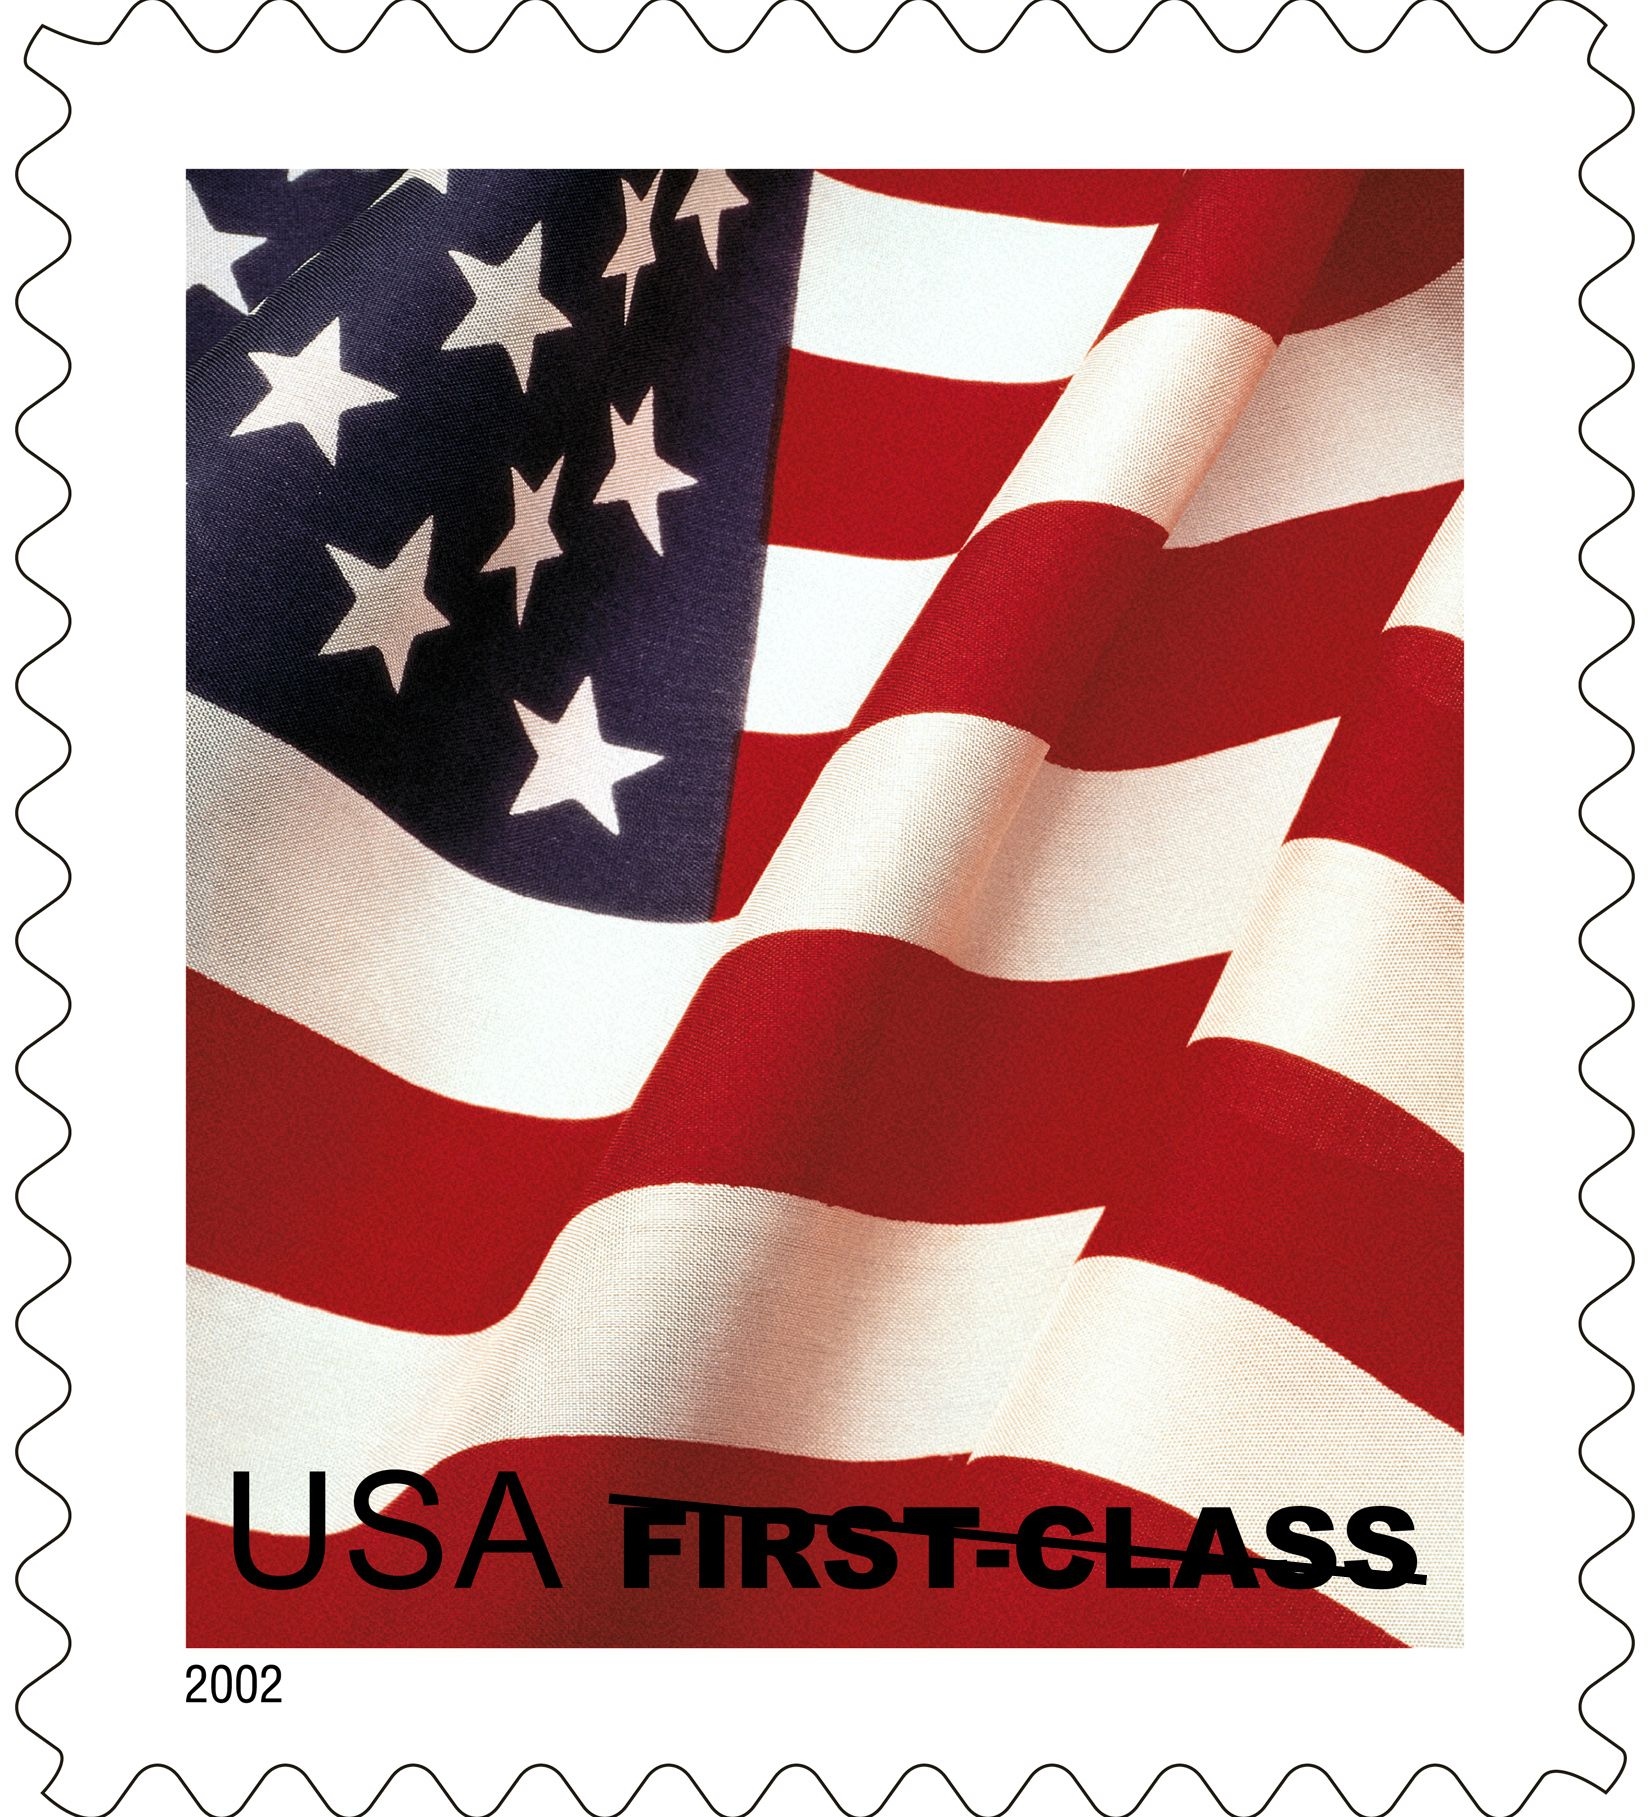 In 2002 usps issued the first flag stamp to feature just